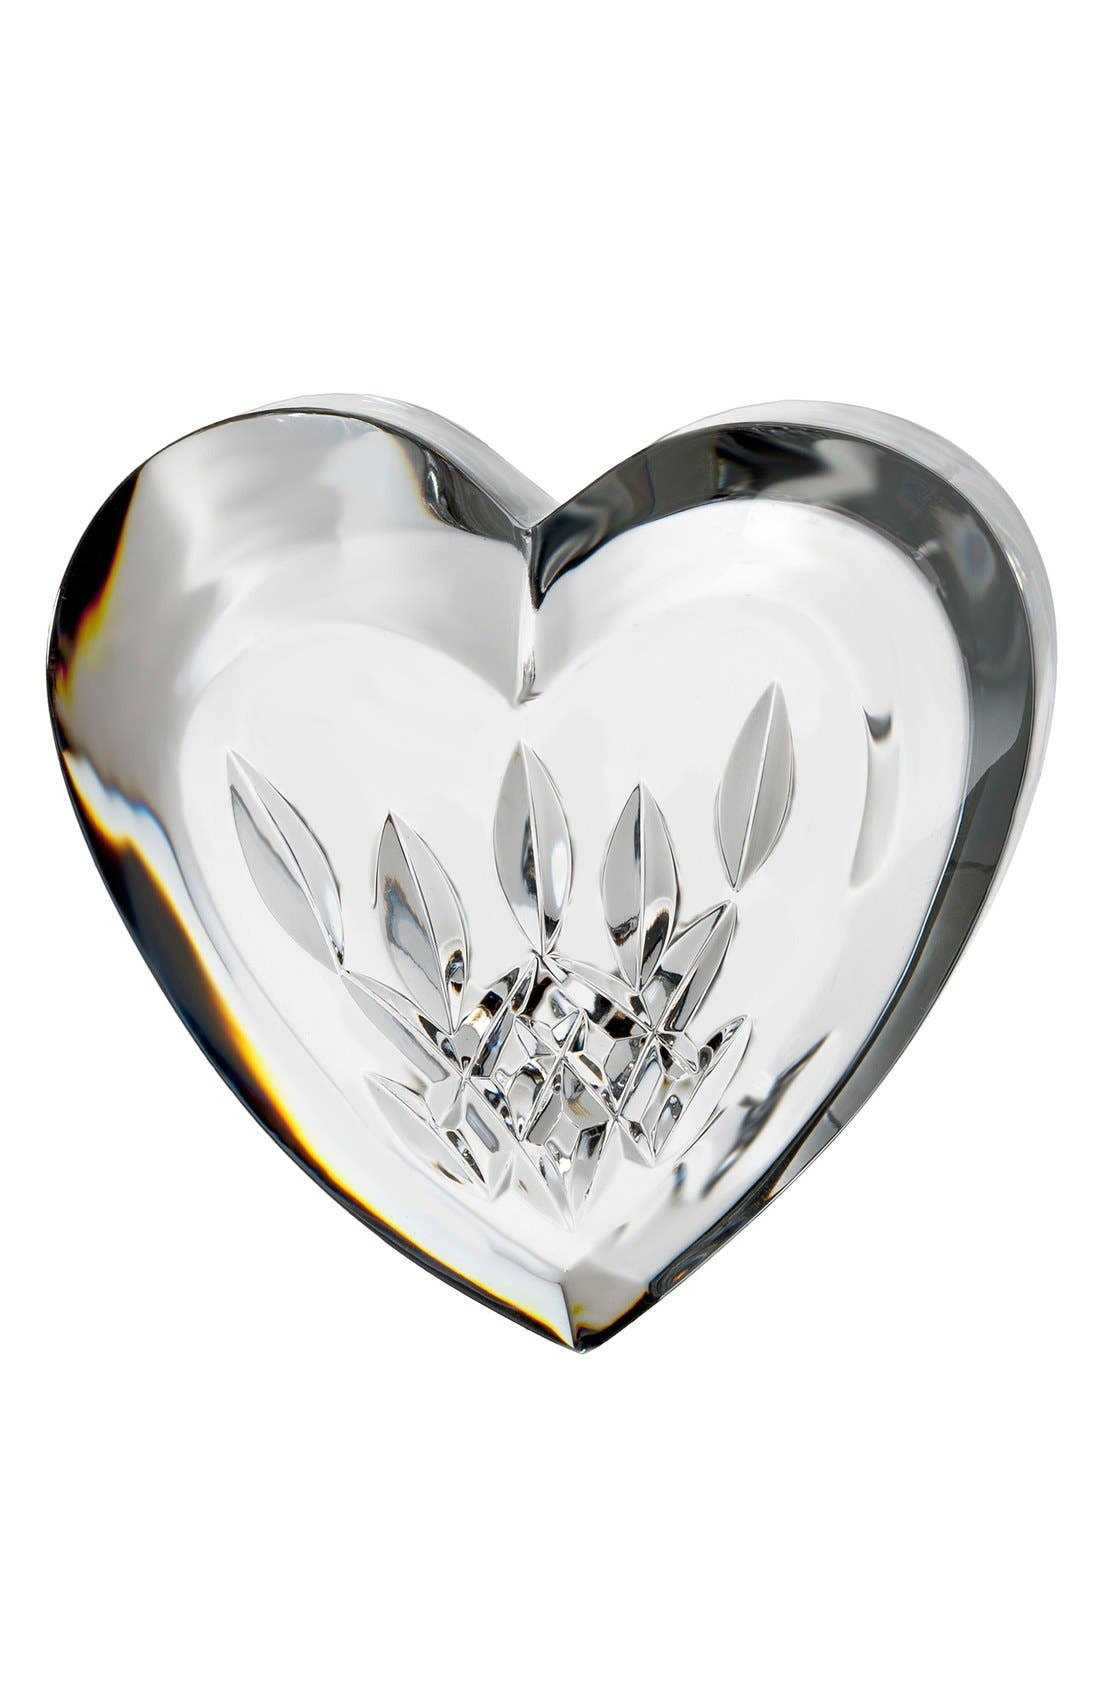 'Lismore' Heart Lead Crystal Paperweight,                             Main thumbnail 1, color,                             100